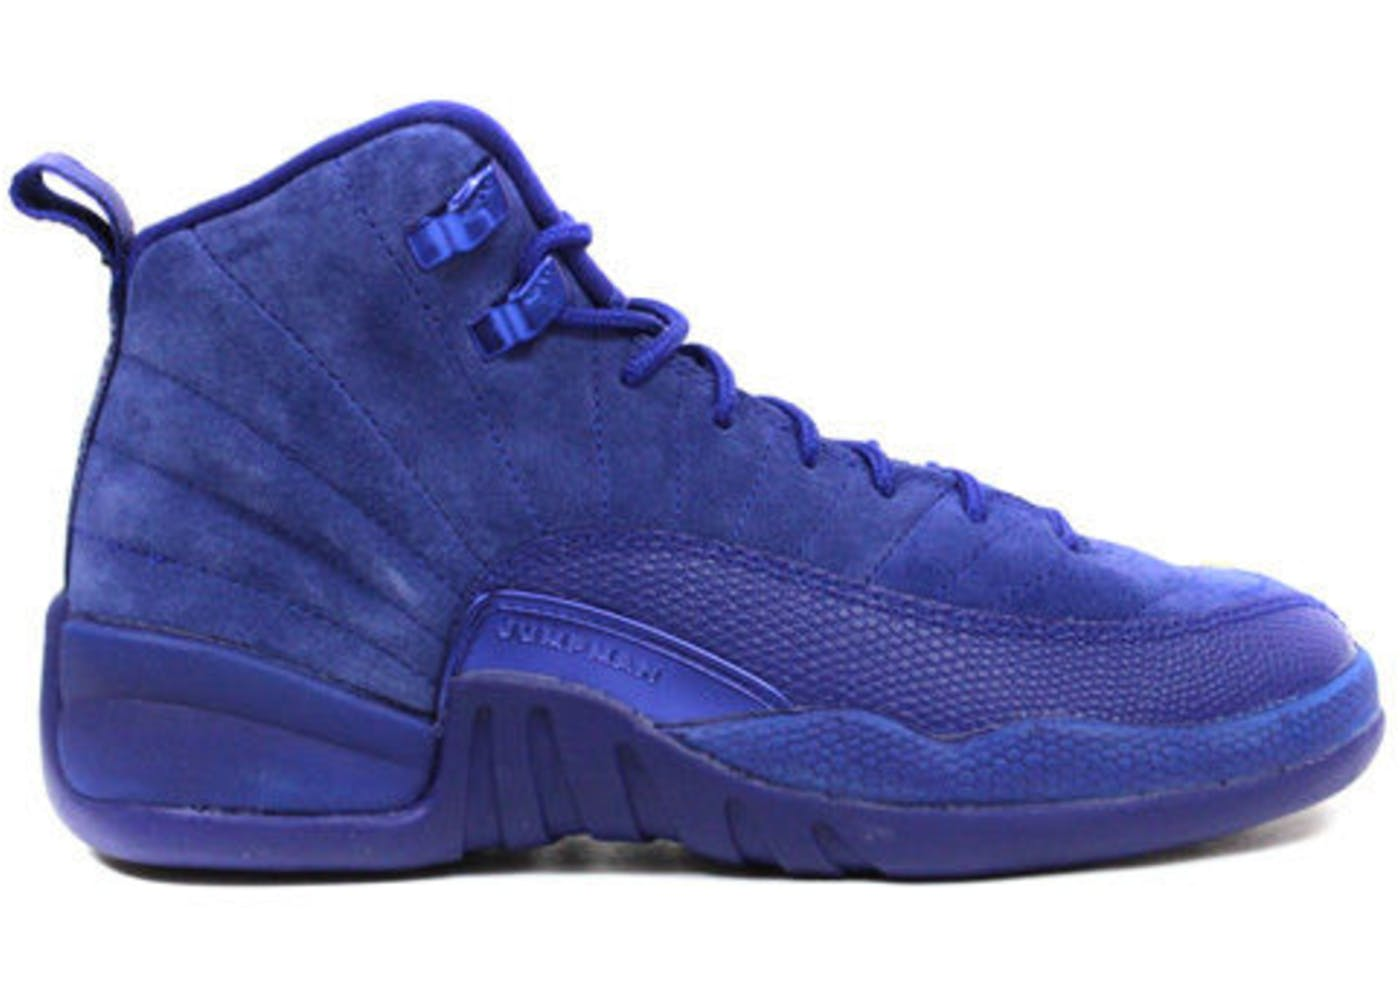 jordan 12 royal blue